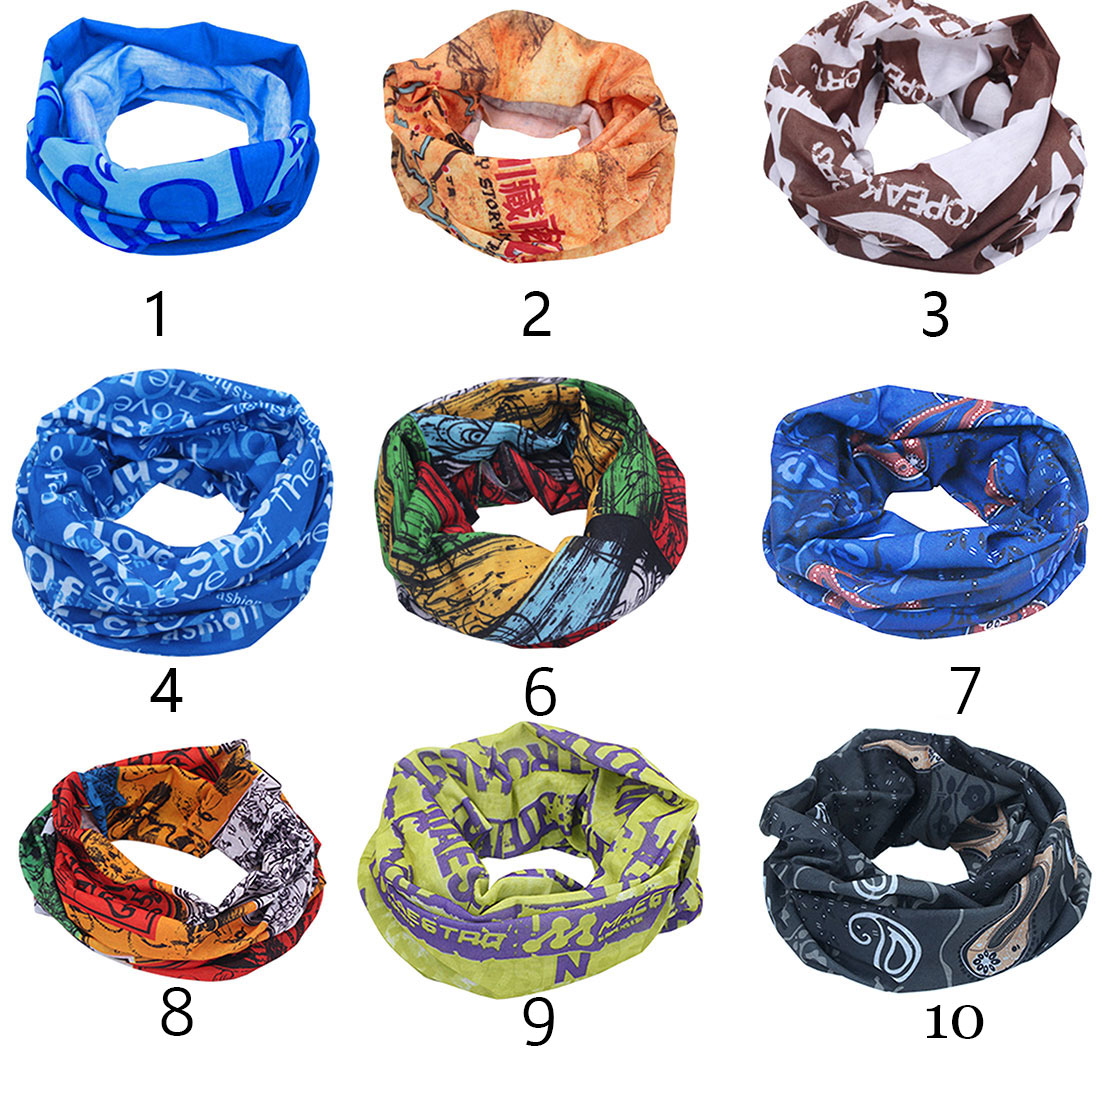 Camping & Hiking Scarves 1pc Outdoor Sport Camping & Hiking Scarves Cycling Bicycle Head Scarf Magic Headband Face Mask Snood Bandana Neck Warmer